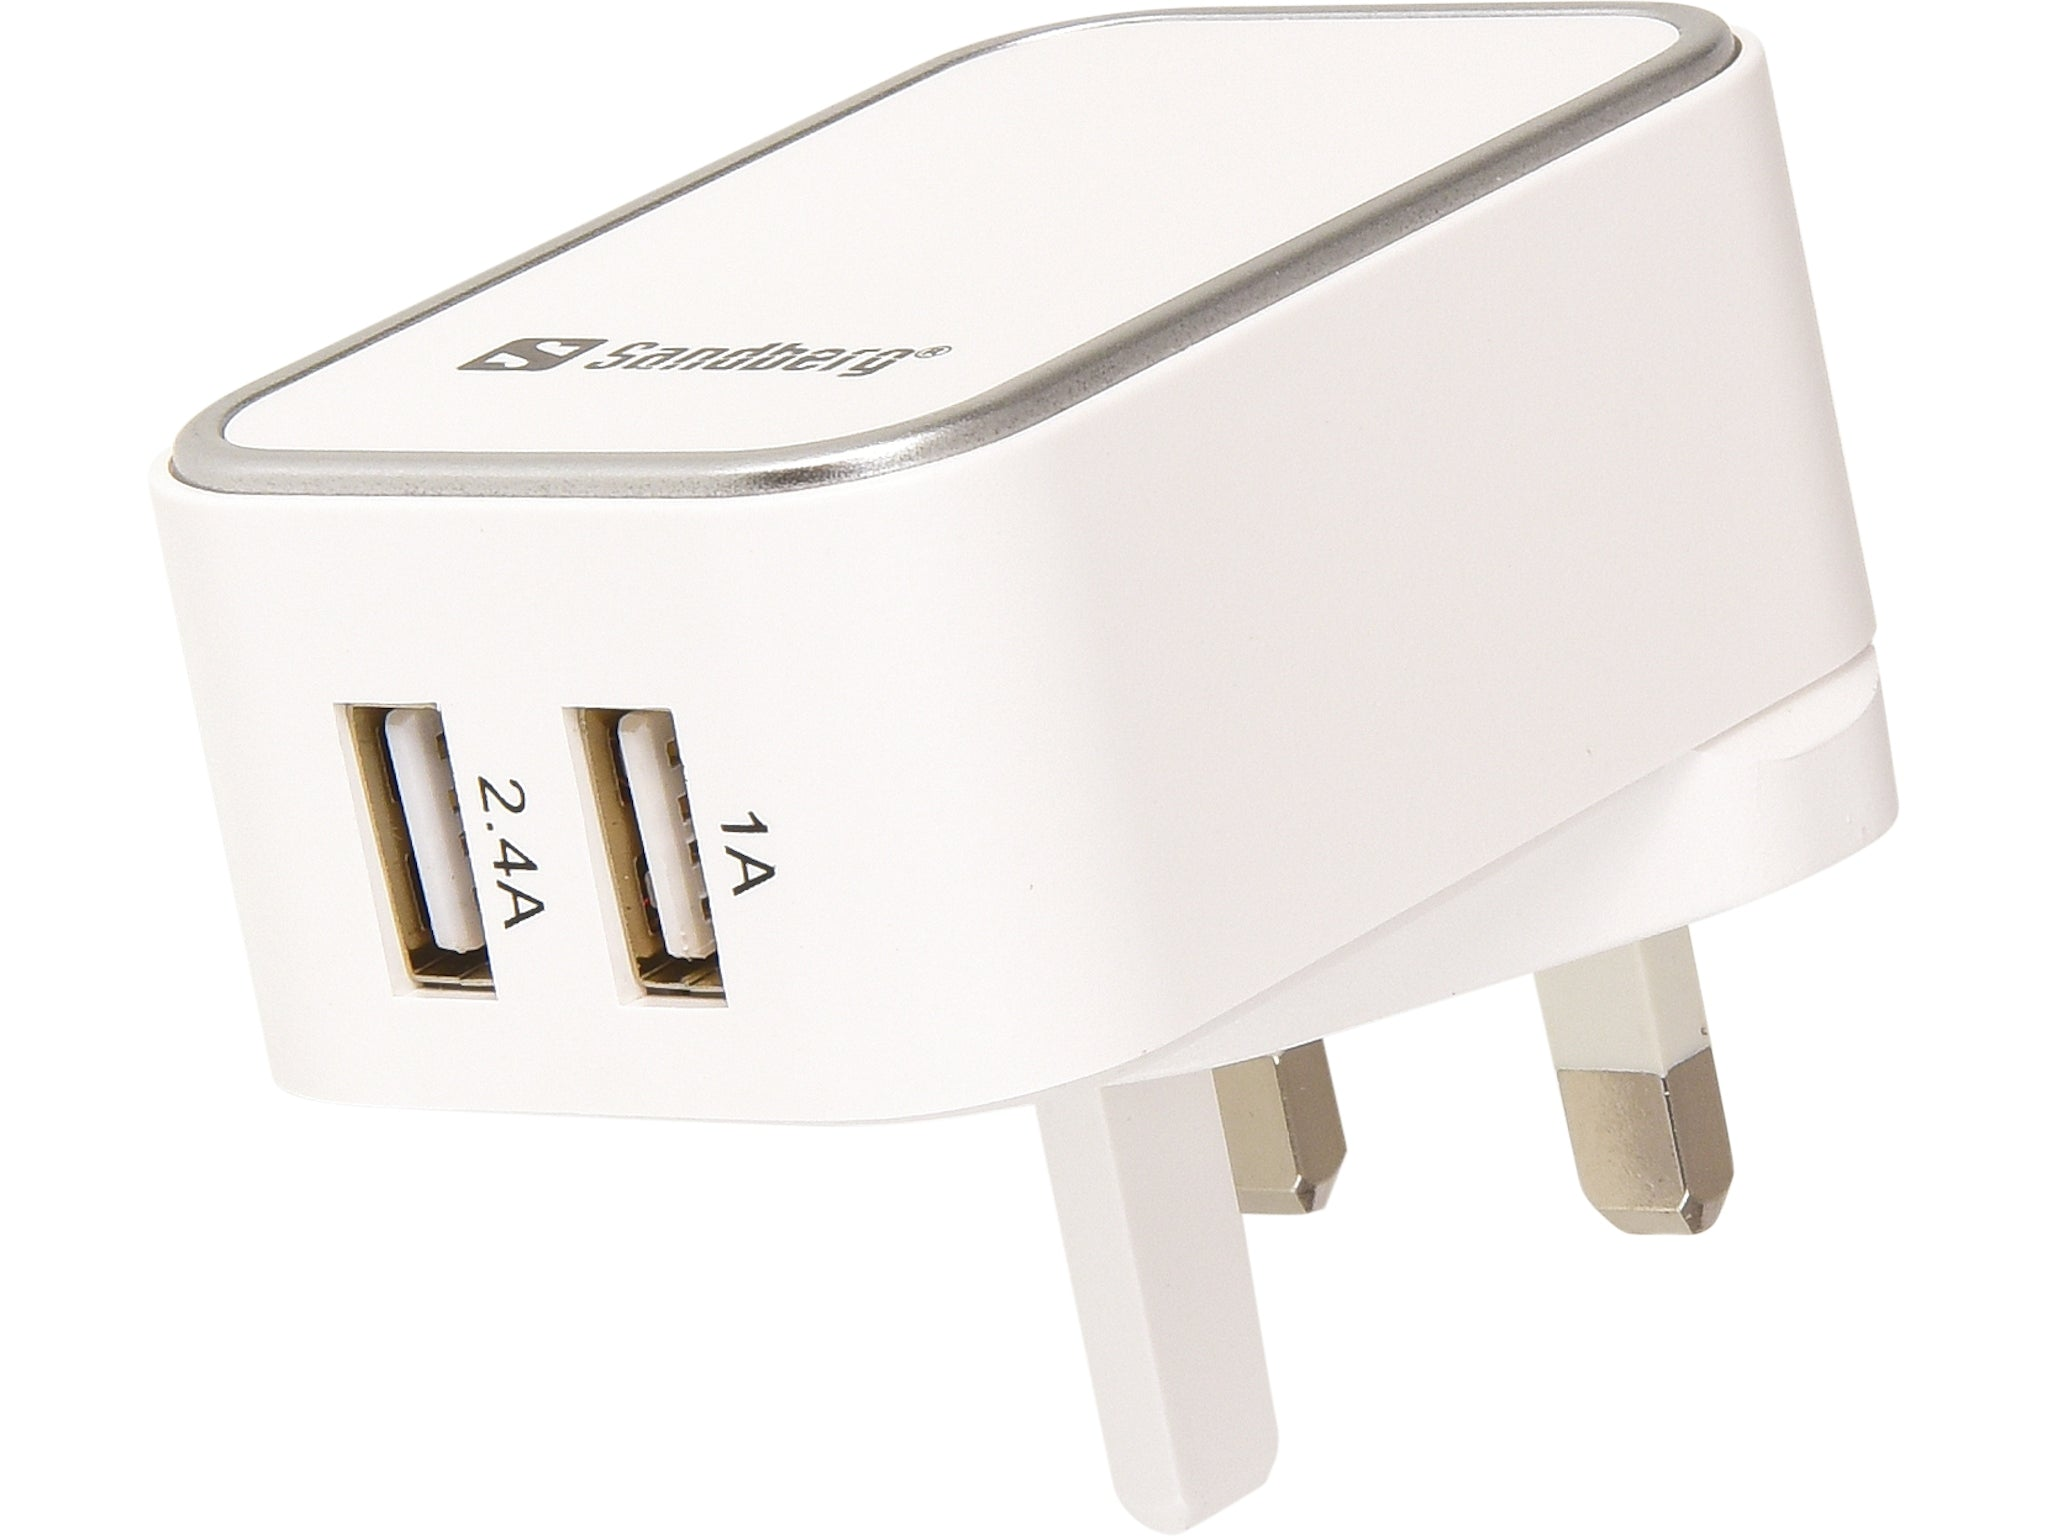 Sandberg 440-58 2.4/1 A Dual USB AC Charger - Cables by Sandberg The Chelsea Gamer